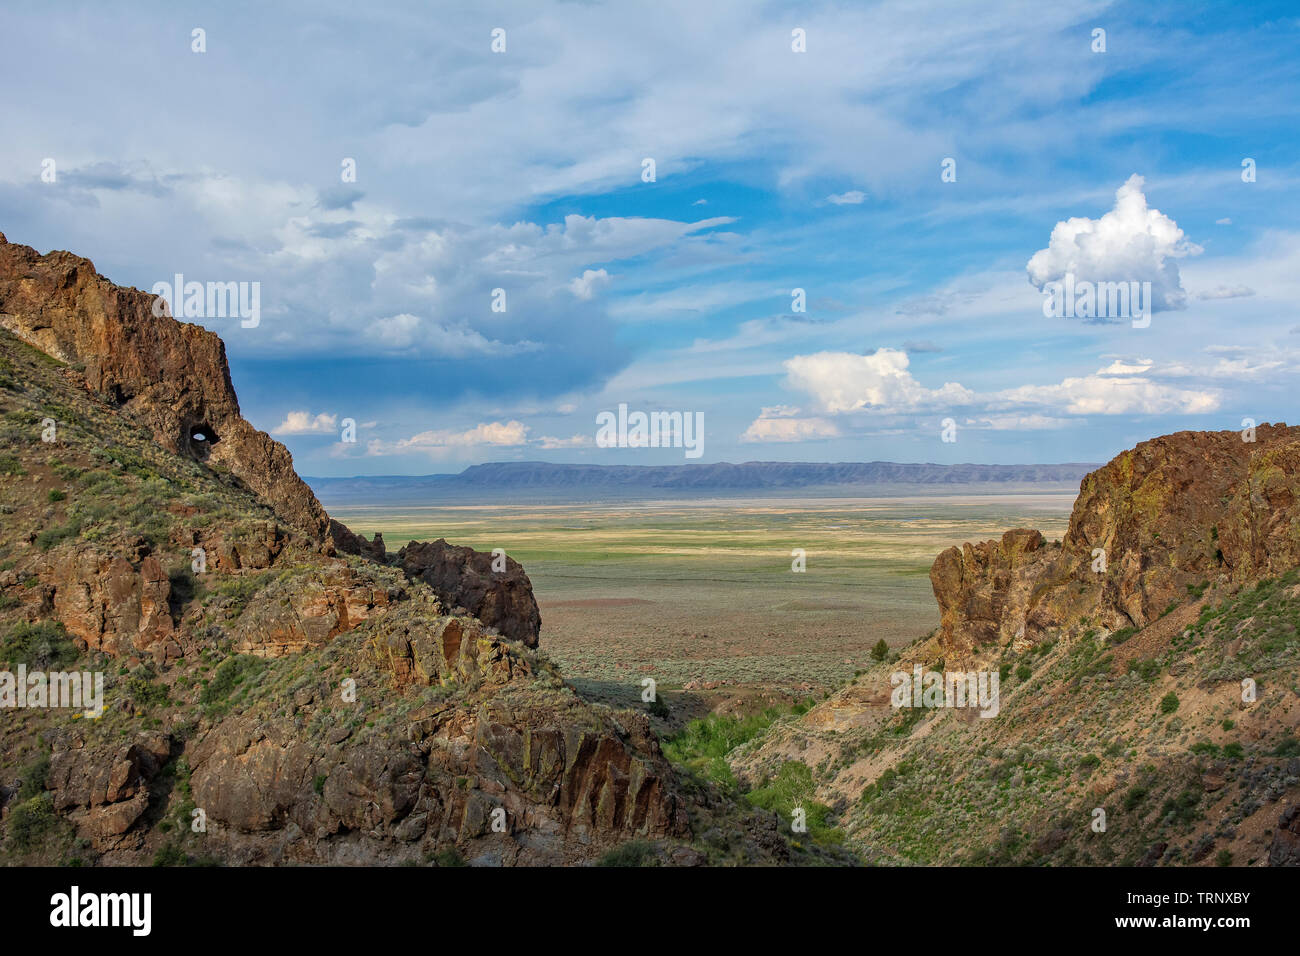 Pike Creek Trail on Steens Mountain looking east over the Alvord Desert in eastern Oregon. - Stock Image